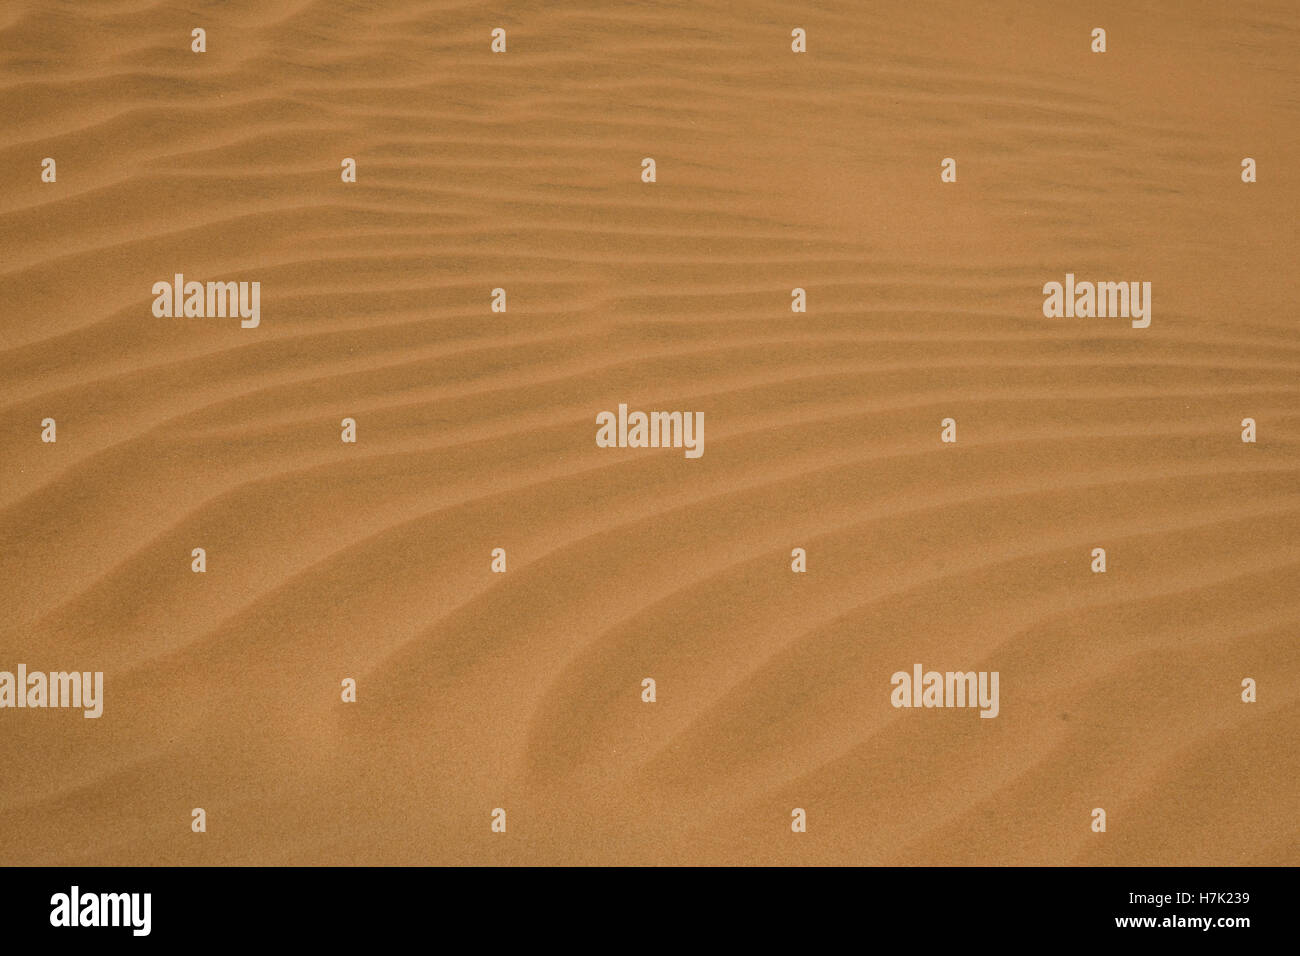 Sand Background Beach or Desert Shape structure - Stock Image